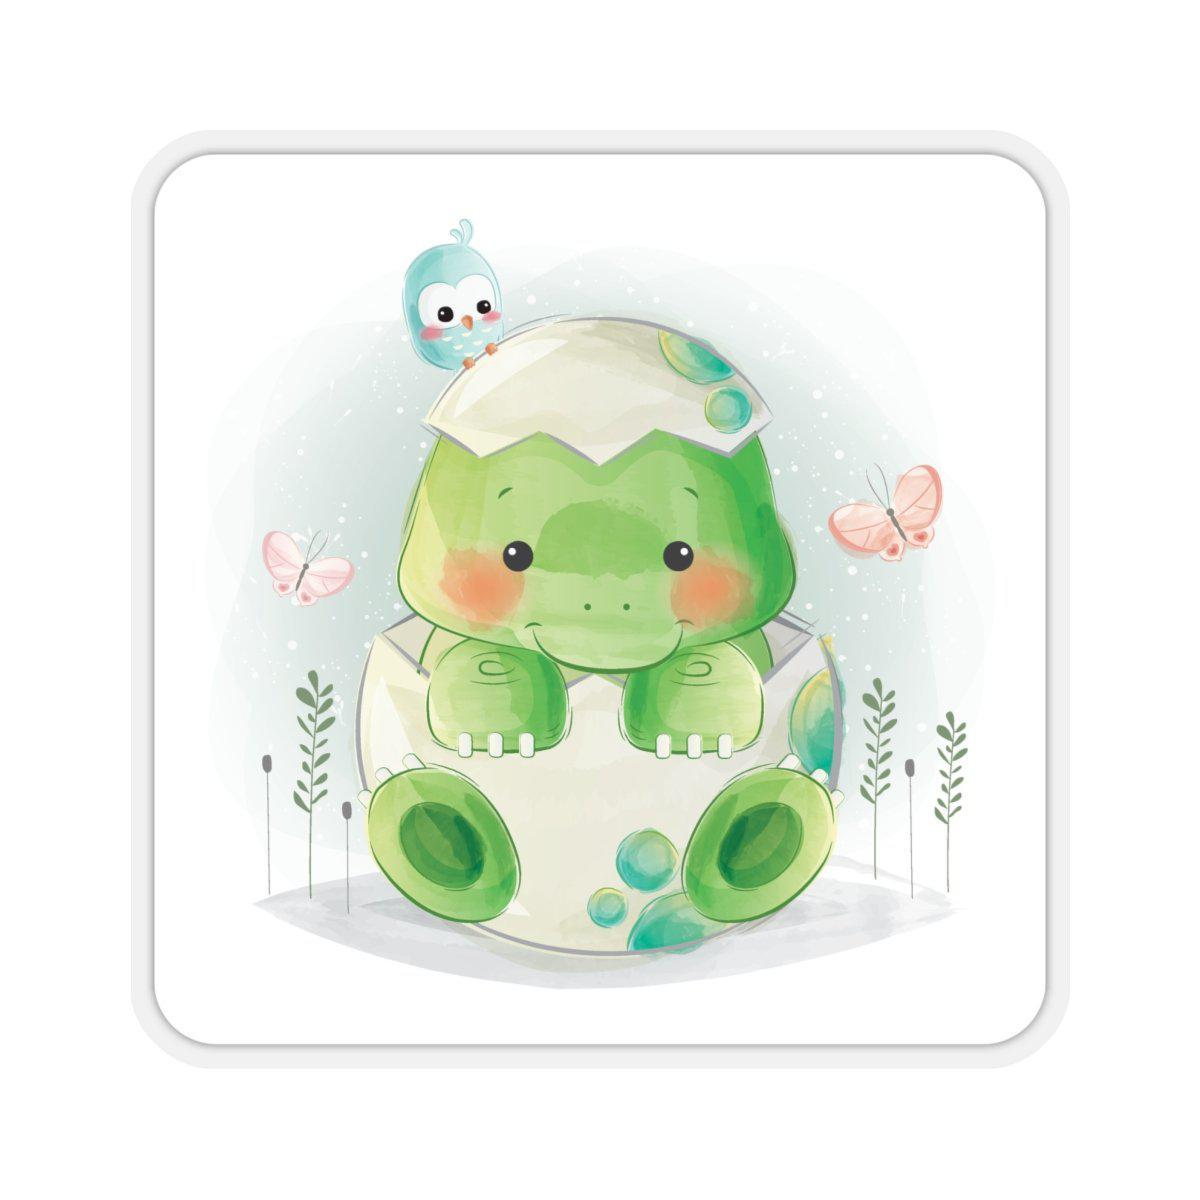 A cute baby dinosaur watercolor sticker. The baby dinosaur is coming out of his shell, with a bird and butterflies for company.